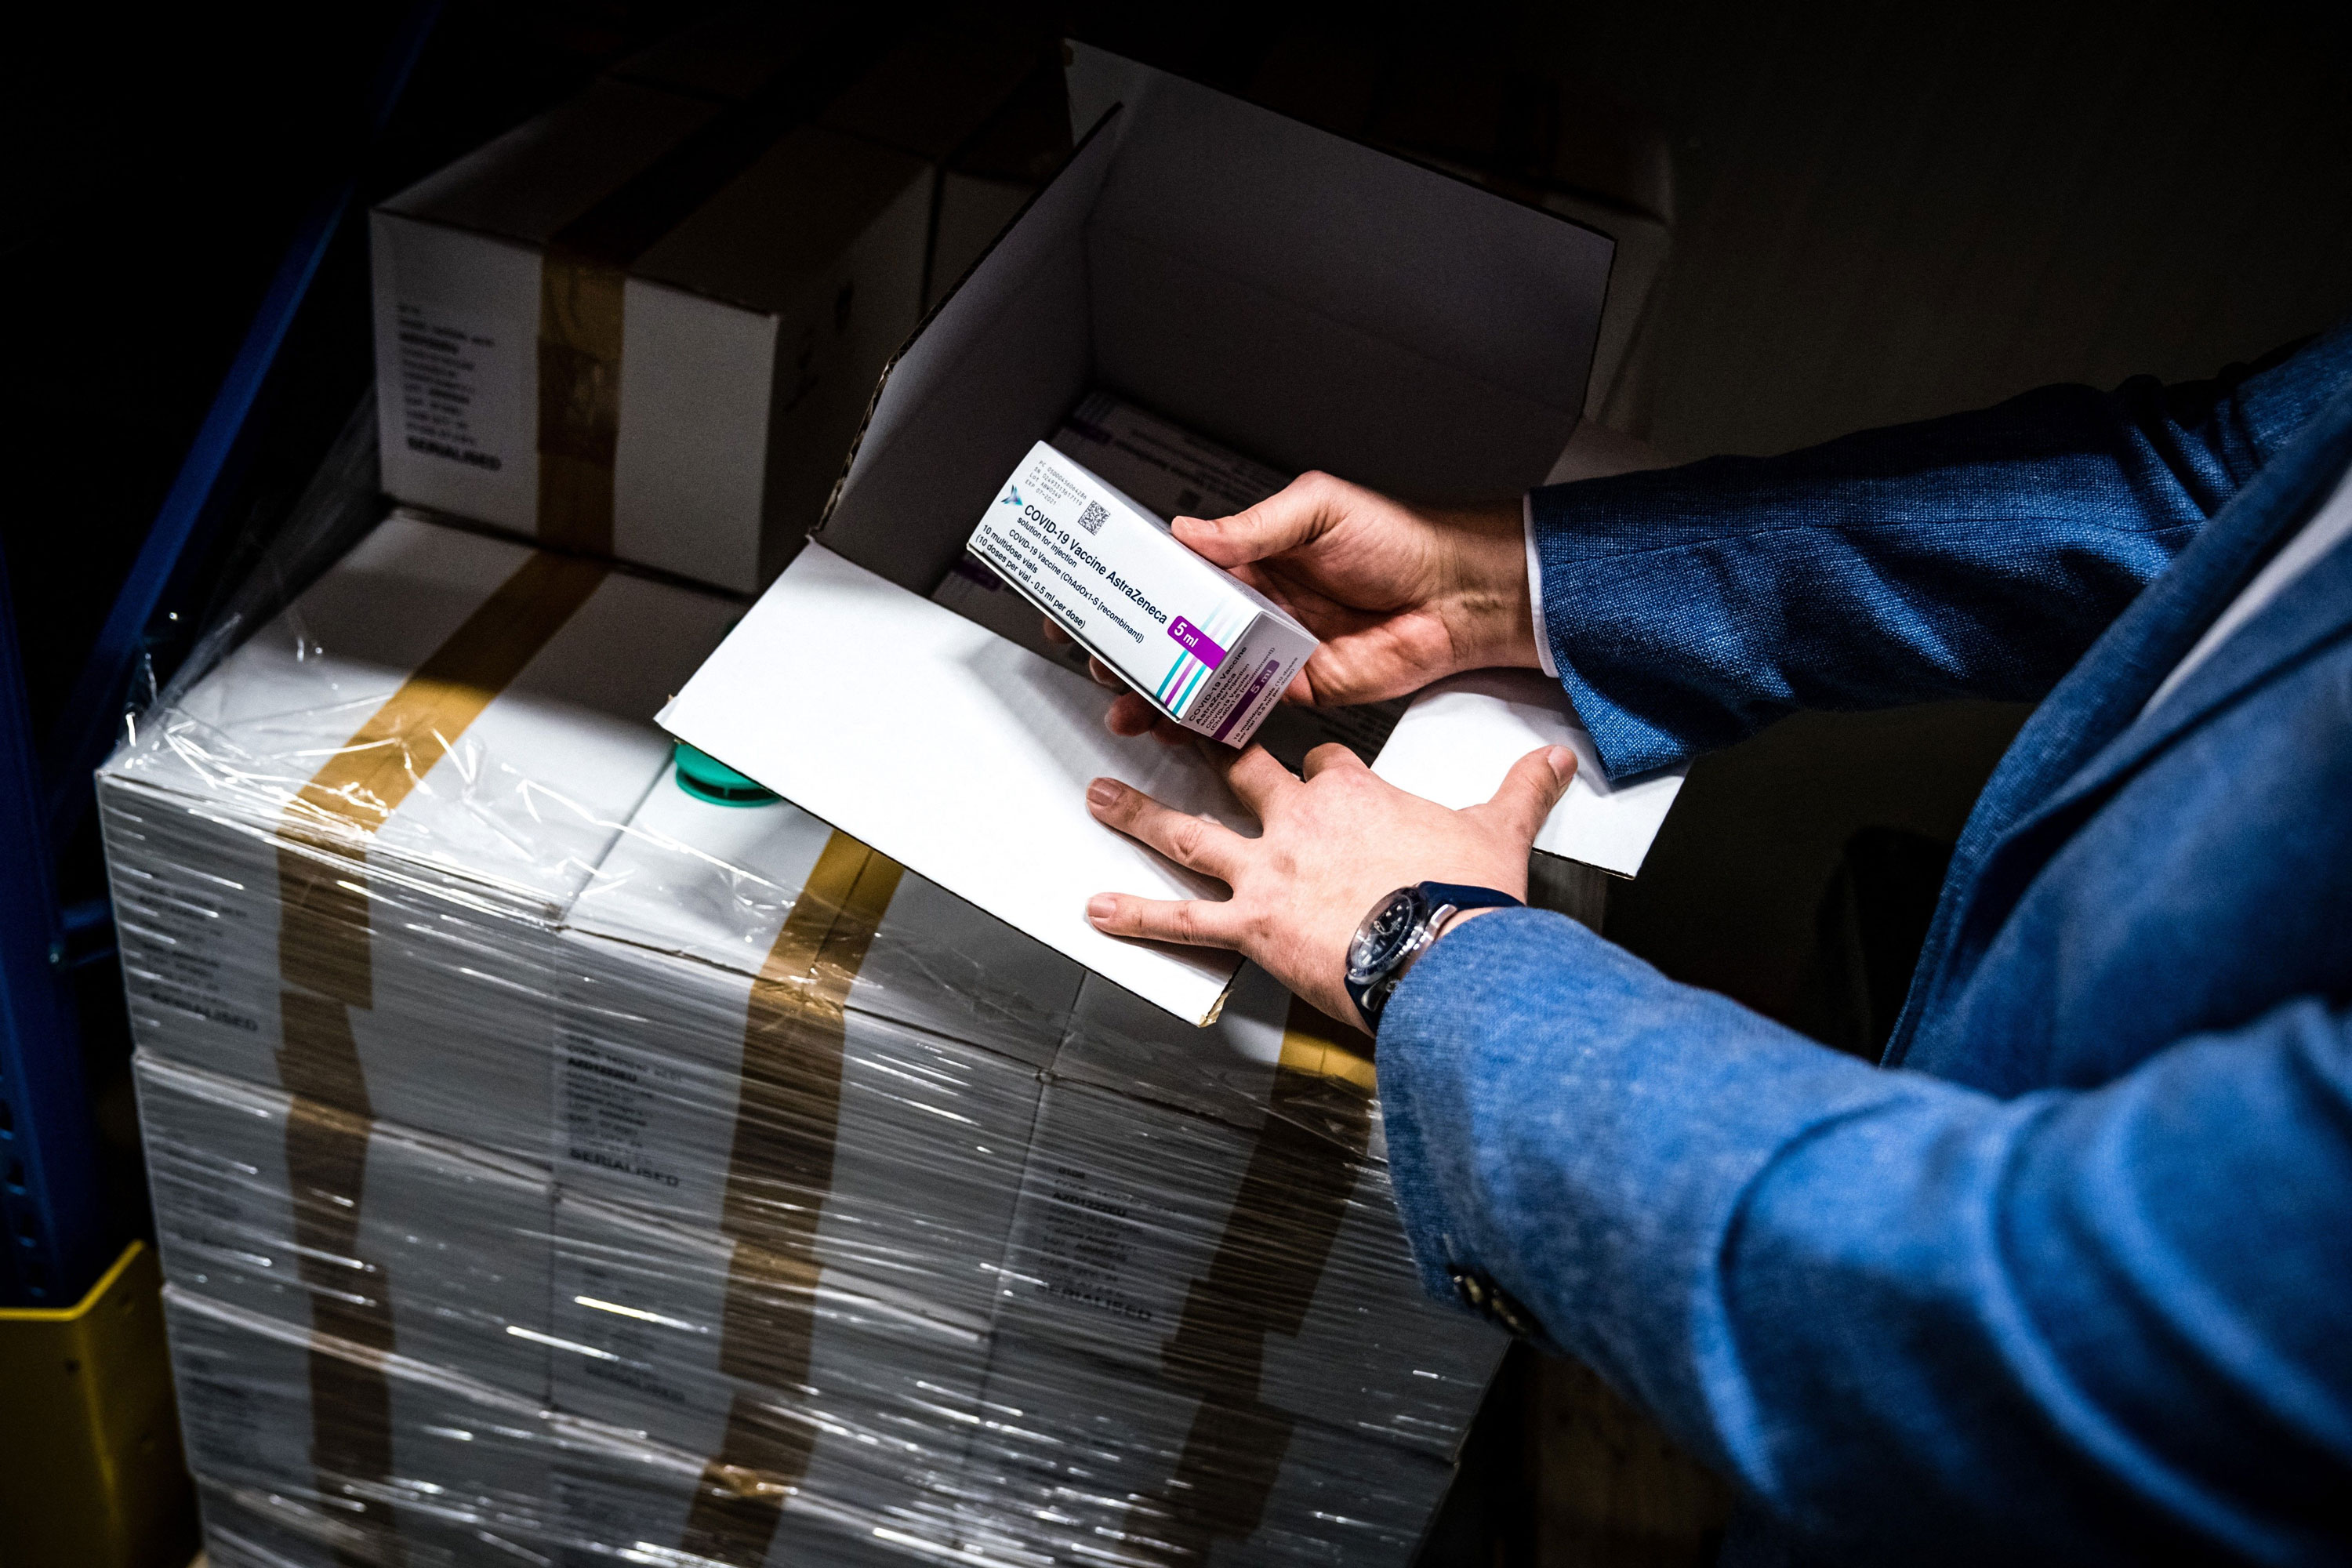 Boxes of AstraZeneca vaccines are seen in cold storage in Oss, Netherlands on April 6.